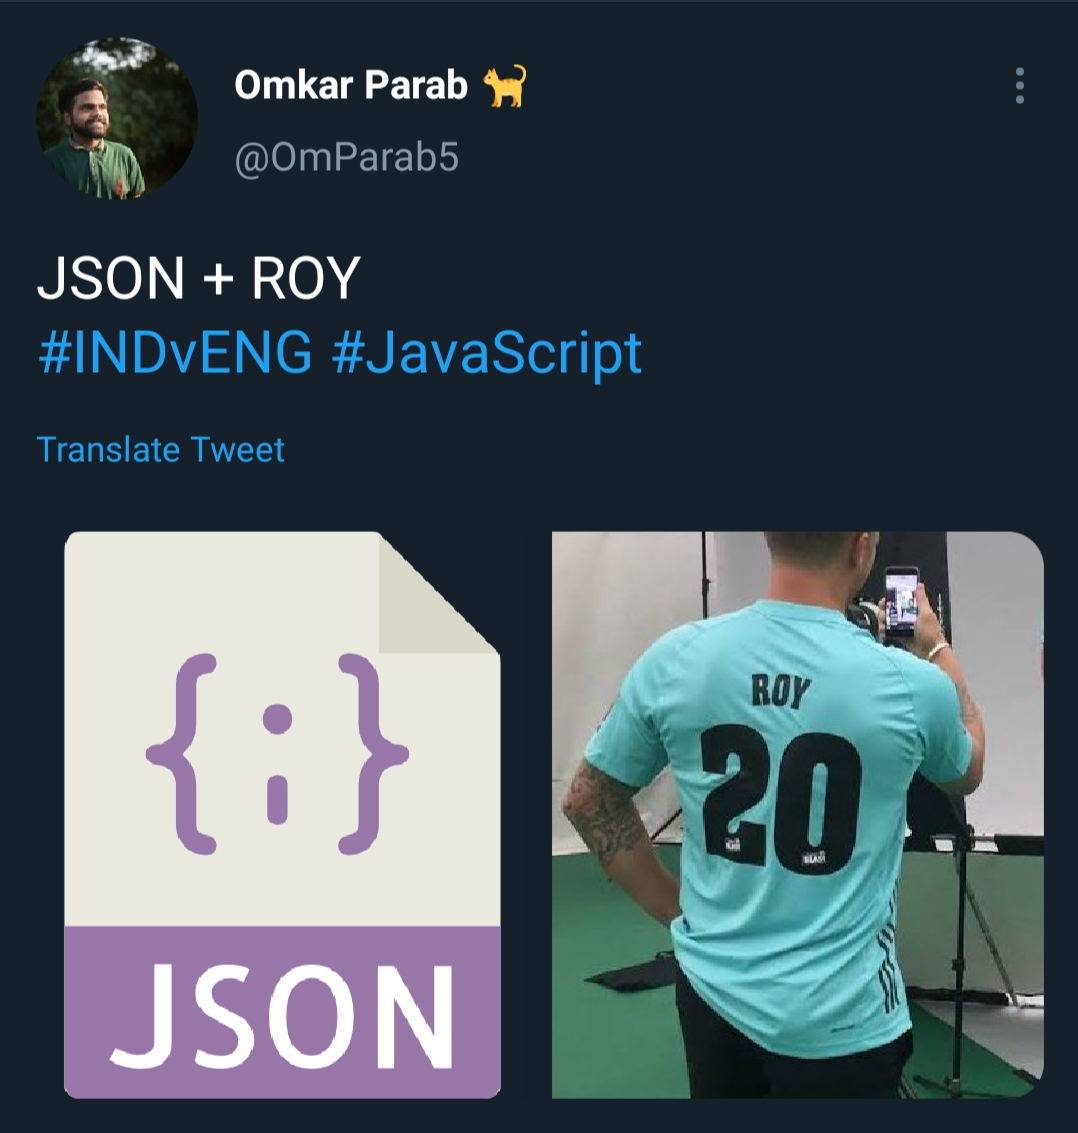 JSON + ROY = Jason Roy